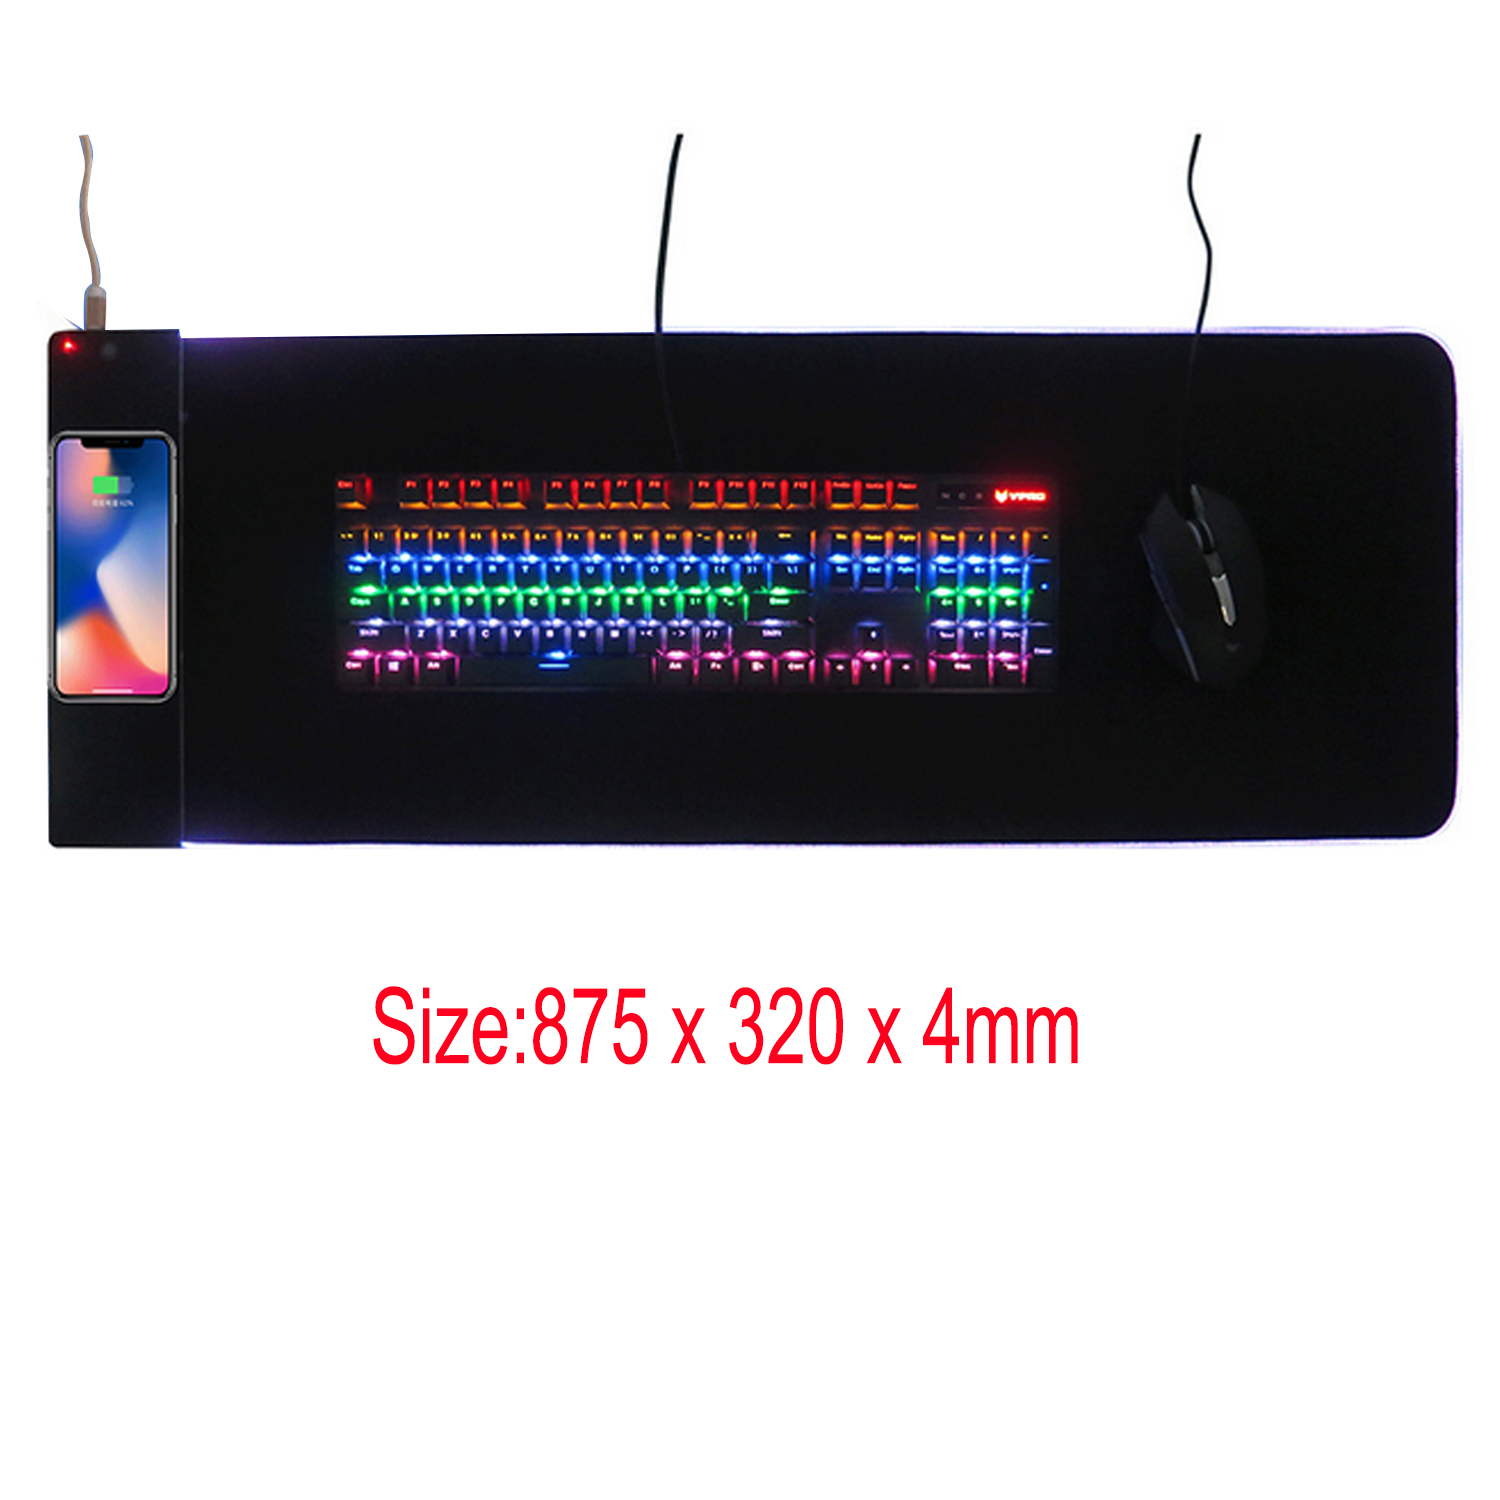 Vococal 875 x 320 x 4mm Large USB Wired LED RGB Colorful Lighting Gaming Mousepad Mouse